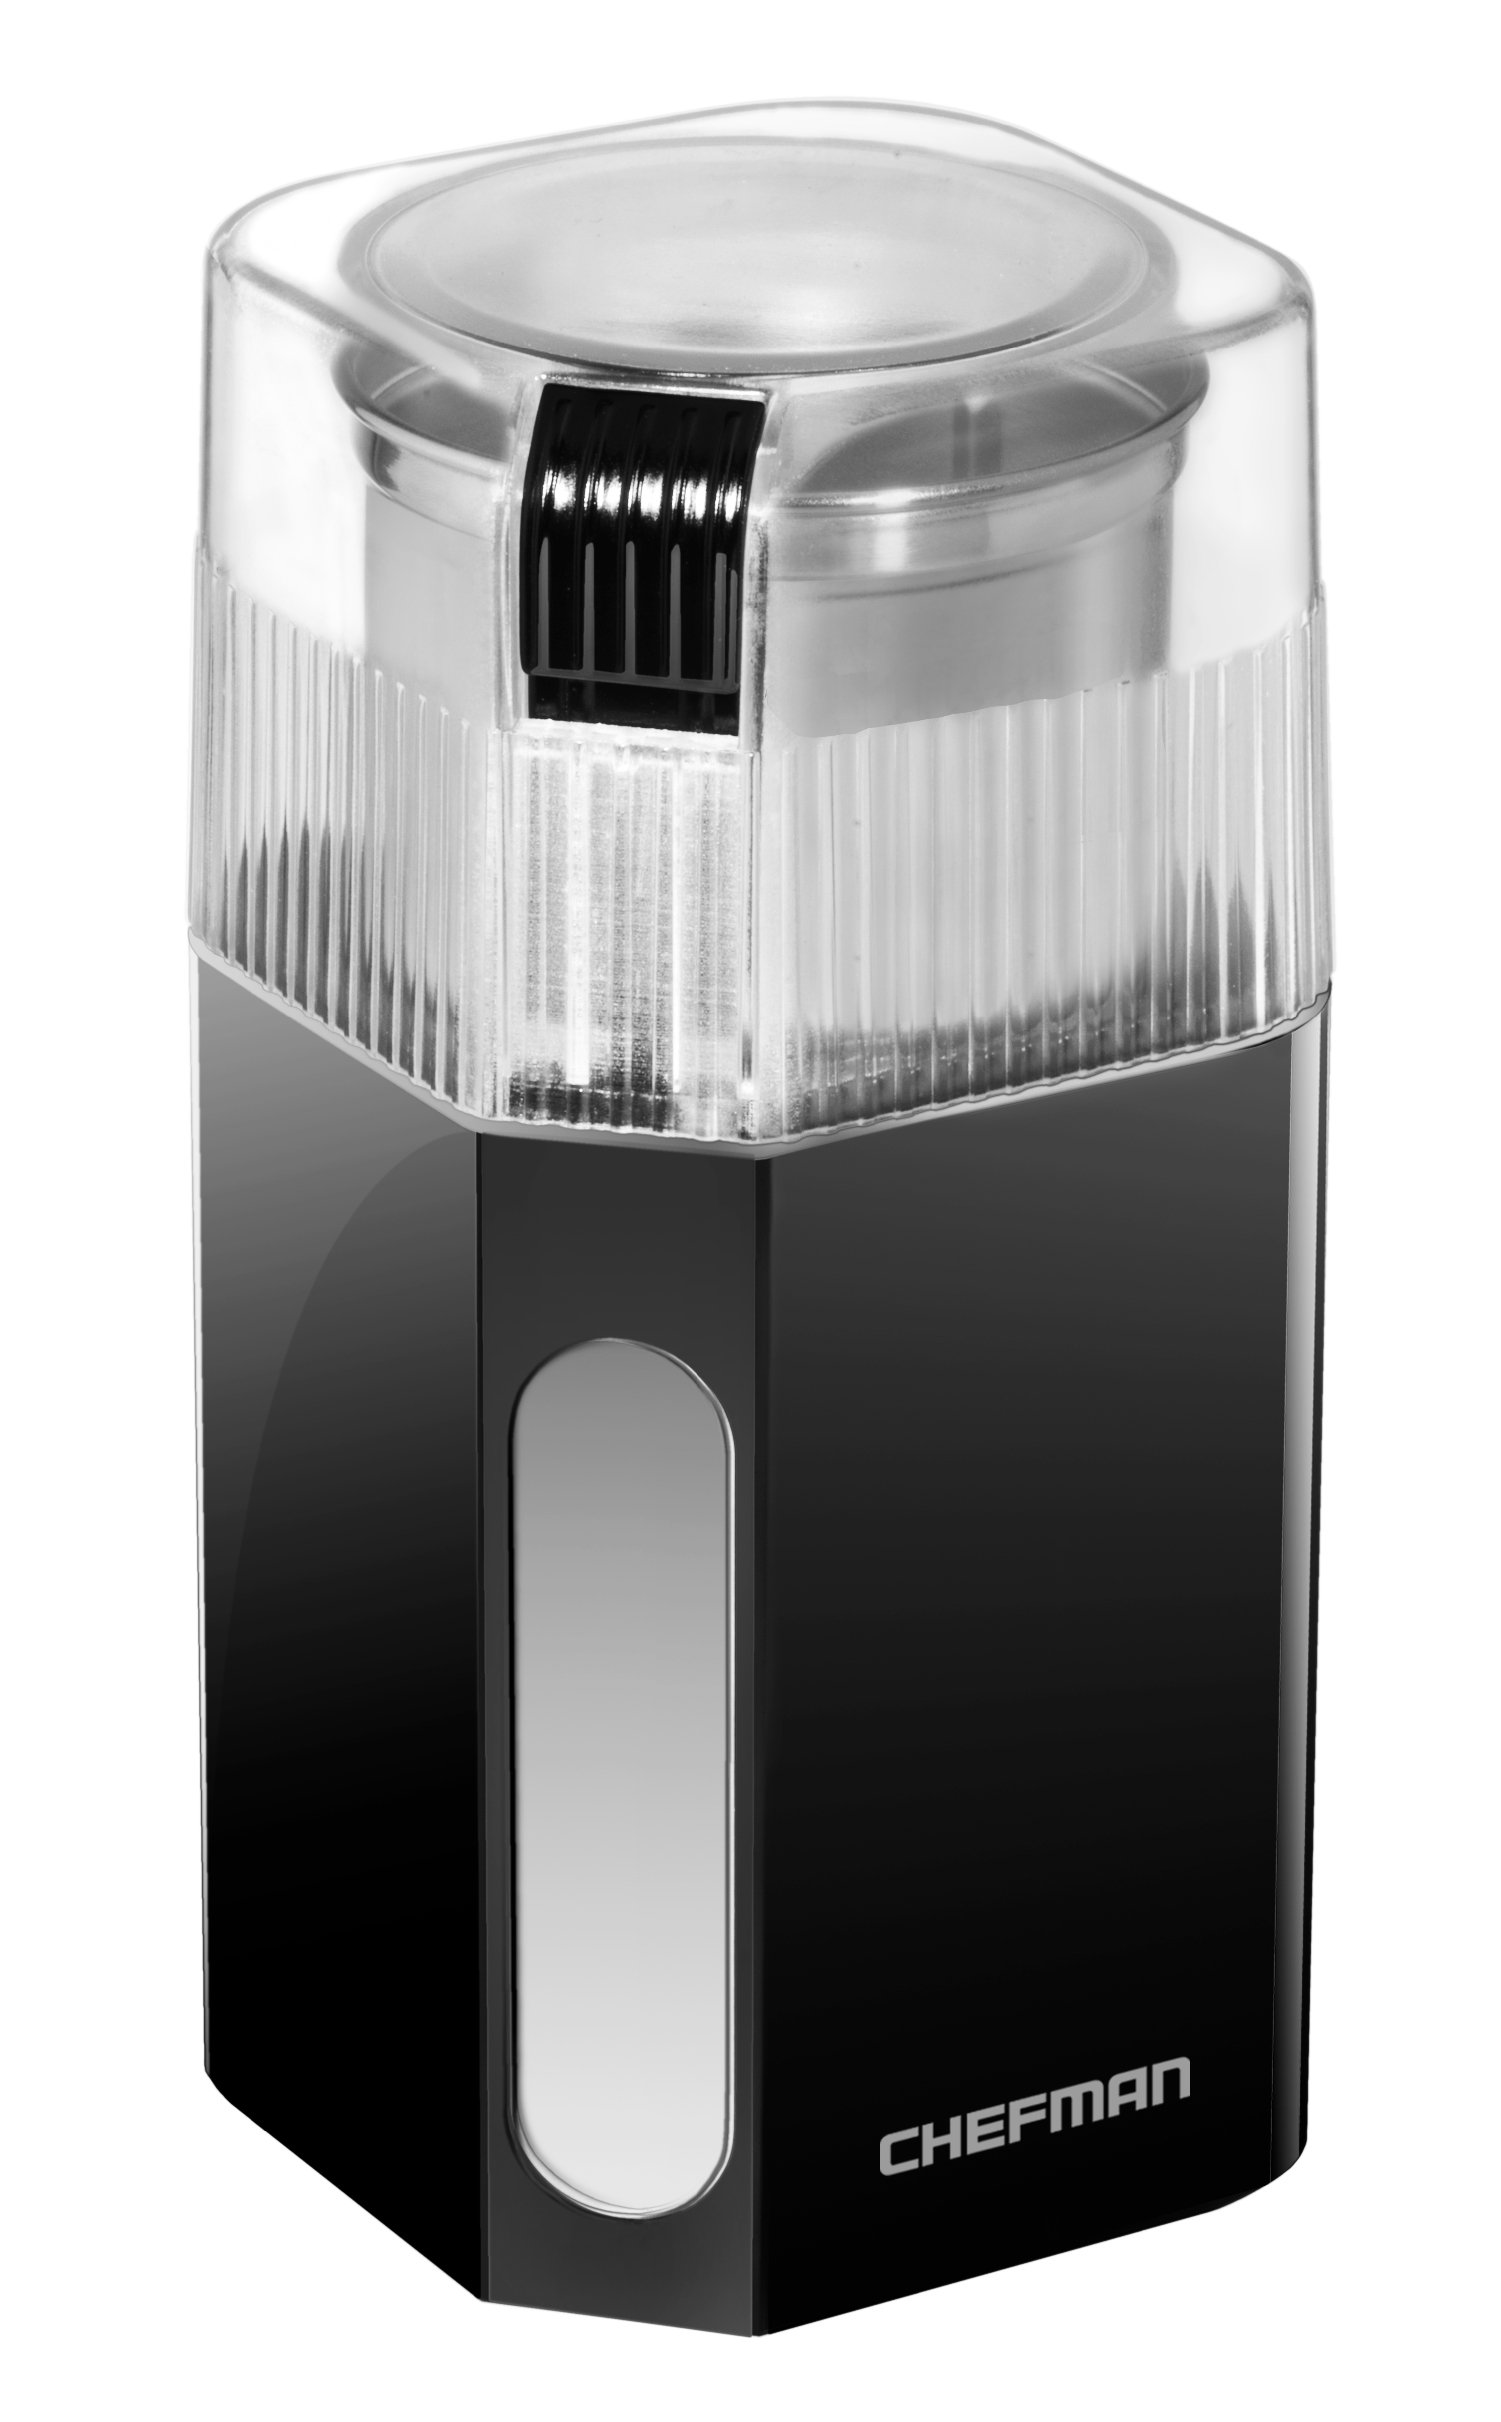 Chefman Coffee Grinder Powerful 250 Watt Electric Mill Freshly-Grinds 2.5 oz Beans, Easy One Touch Operation, Removable & Dishwasher Safe Stainless Steel Grinding Cup & Blade, Black